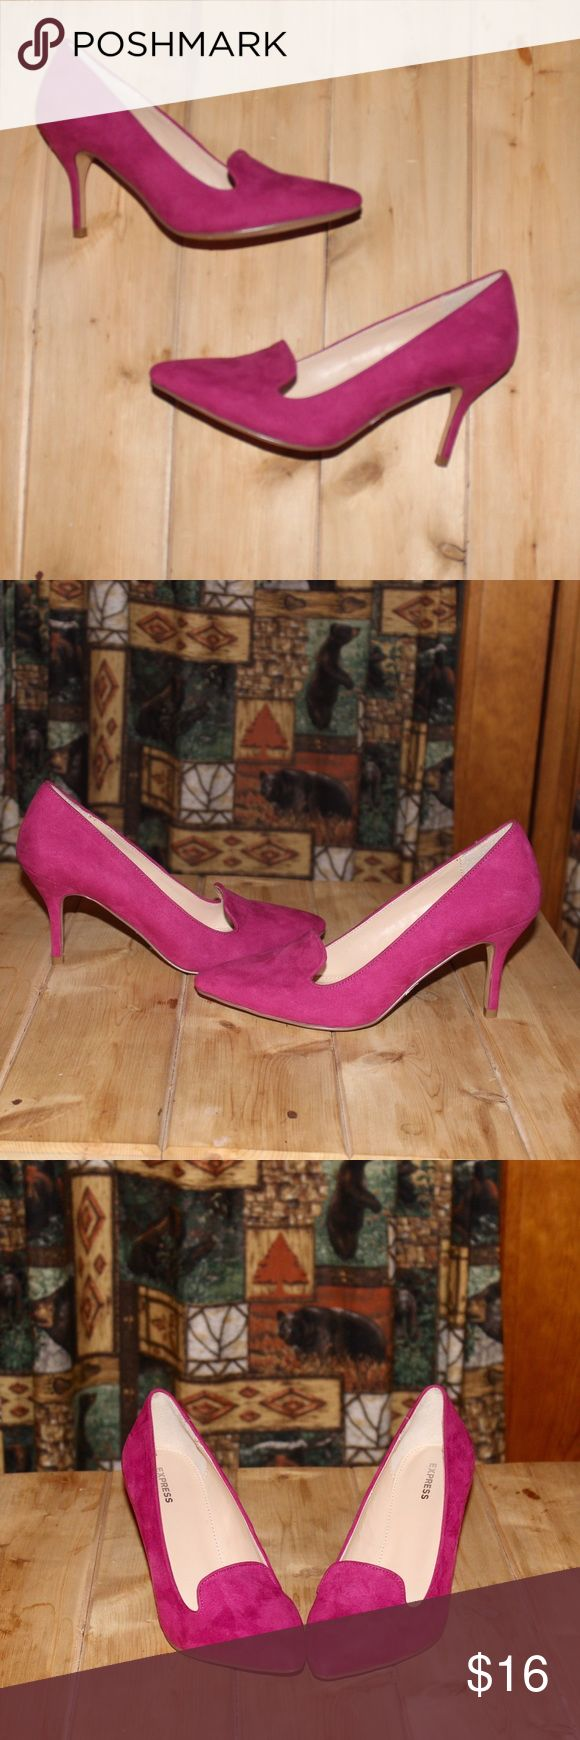 ✨ Express Heels ✨ Super cute super pink suede like Express heels. Heels are  purchased second hand so there is writing on the bottom of one sole. However it's where you cannot see it, and I think after one wear it will be gone. Otherwise shoes are in great condition. I purchased them as a size 6- they fit as a 6 but no size marked on shoe. Express Shoes Heels